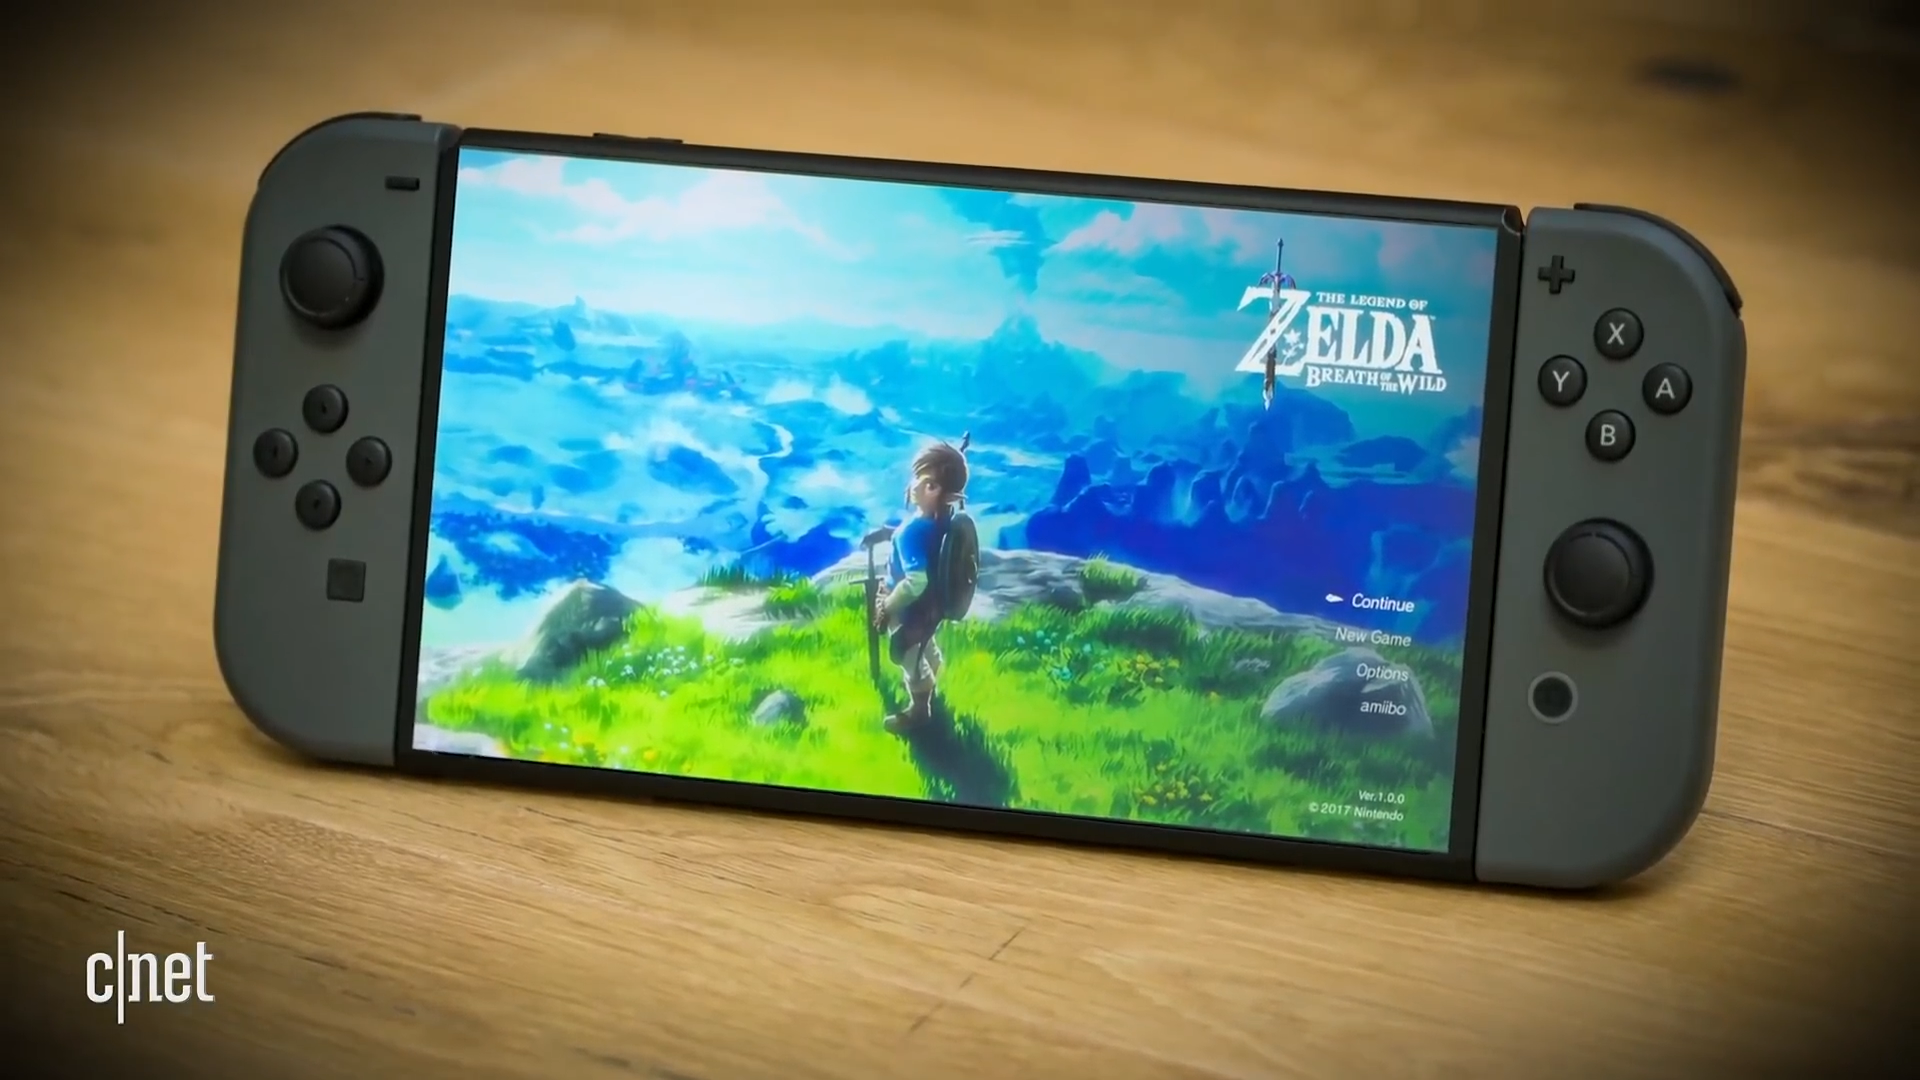 nintendo-switch-pro-4k-oled-display-and-everything-else-we-know-mp4-00-00-05-11-still001.png